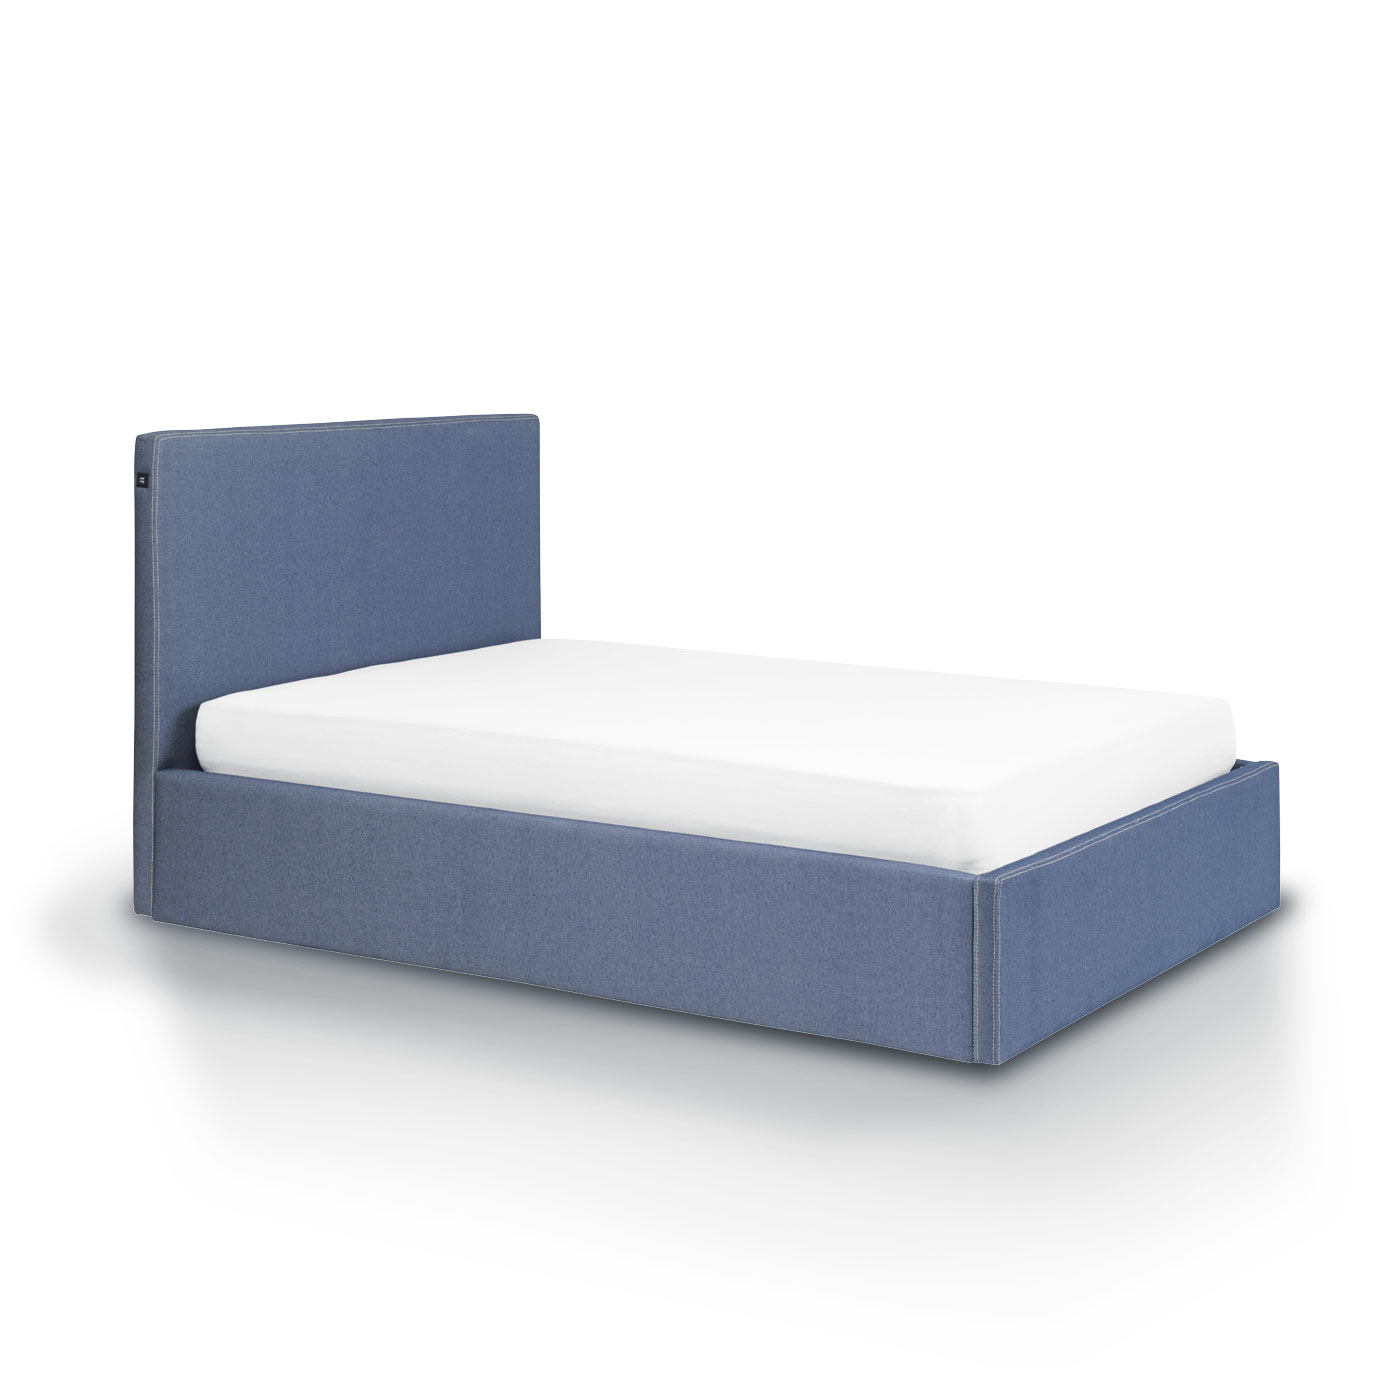 lit coffre 140 atlanta tissu blue jean 39 s idkid 39 s. Black Bedroom Furniture Sets. Home Design Ideas